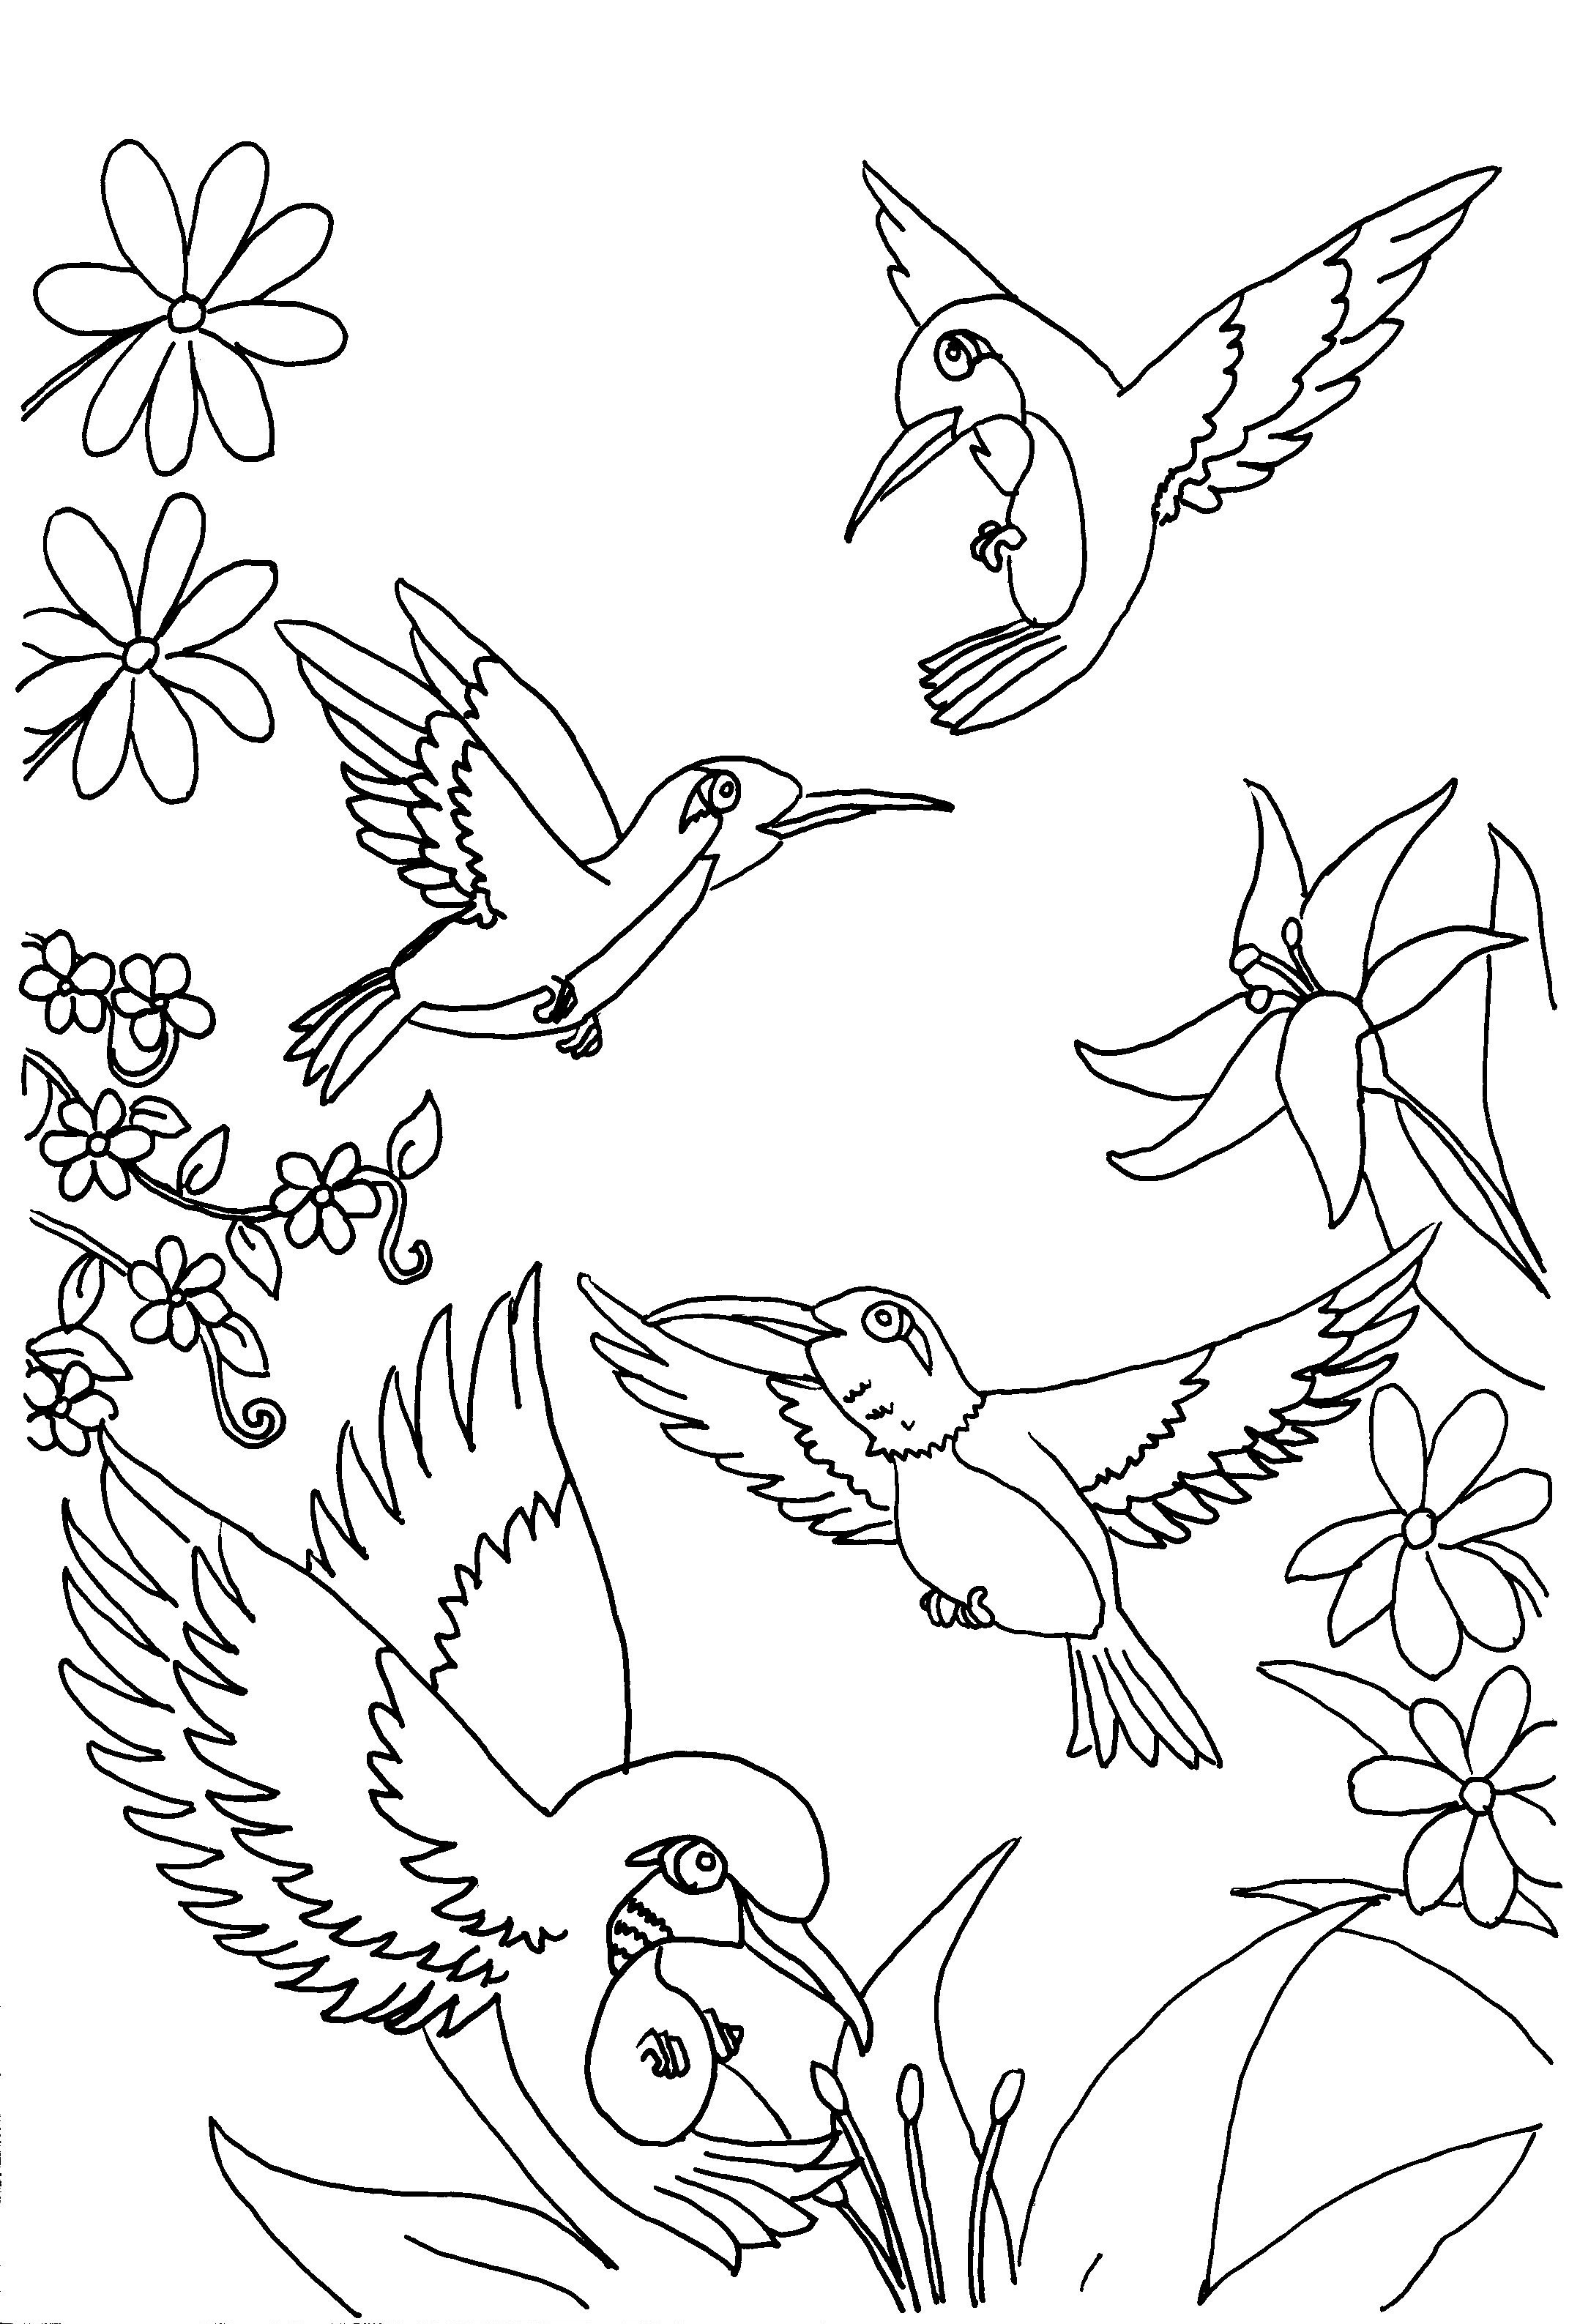 coloring birds for kids hummingbird coloring pages to download and print for free for kids coloring birds